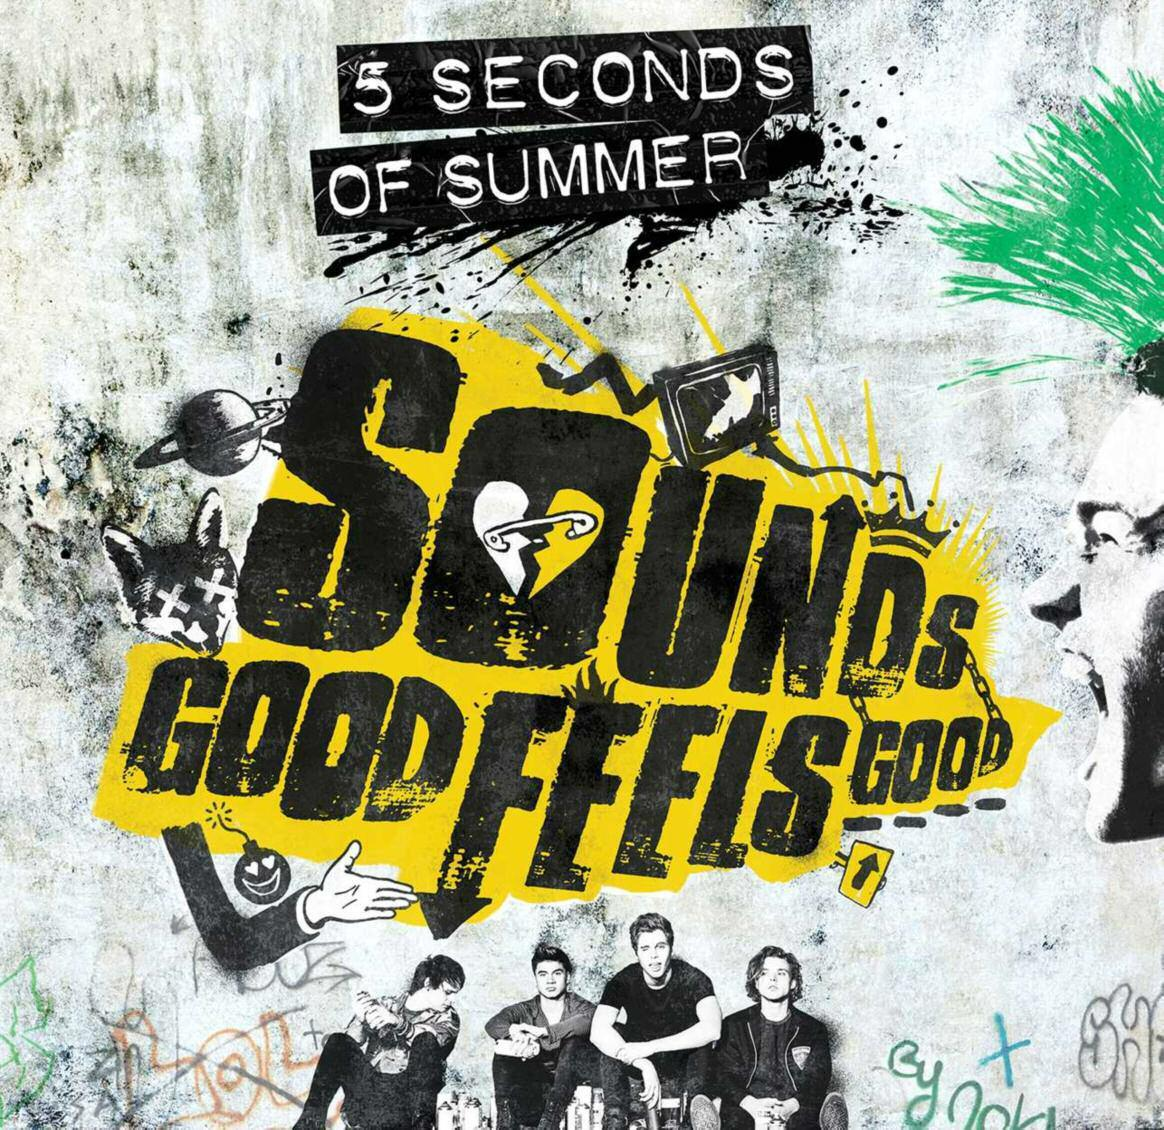 SOUNDS GOOD FEELS GOOD - 5 SECONDS OF SUMMER - CD -